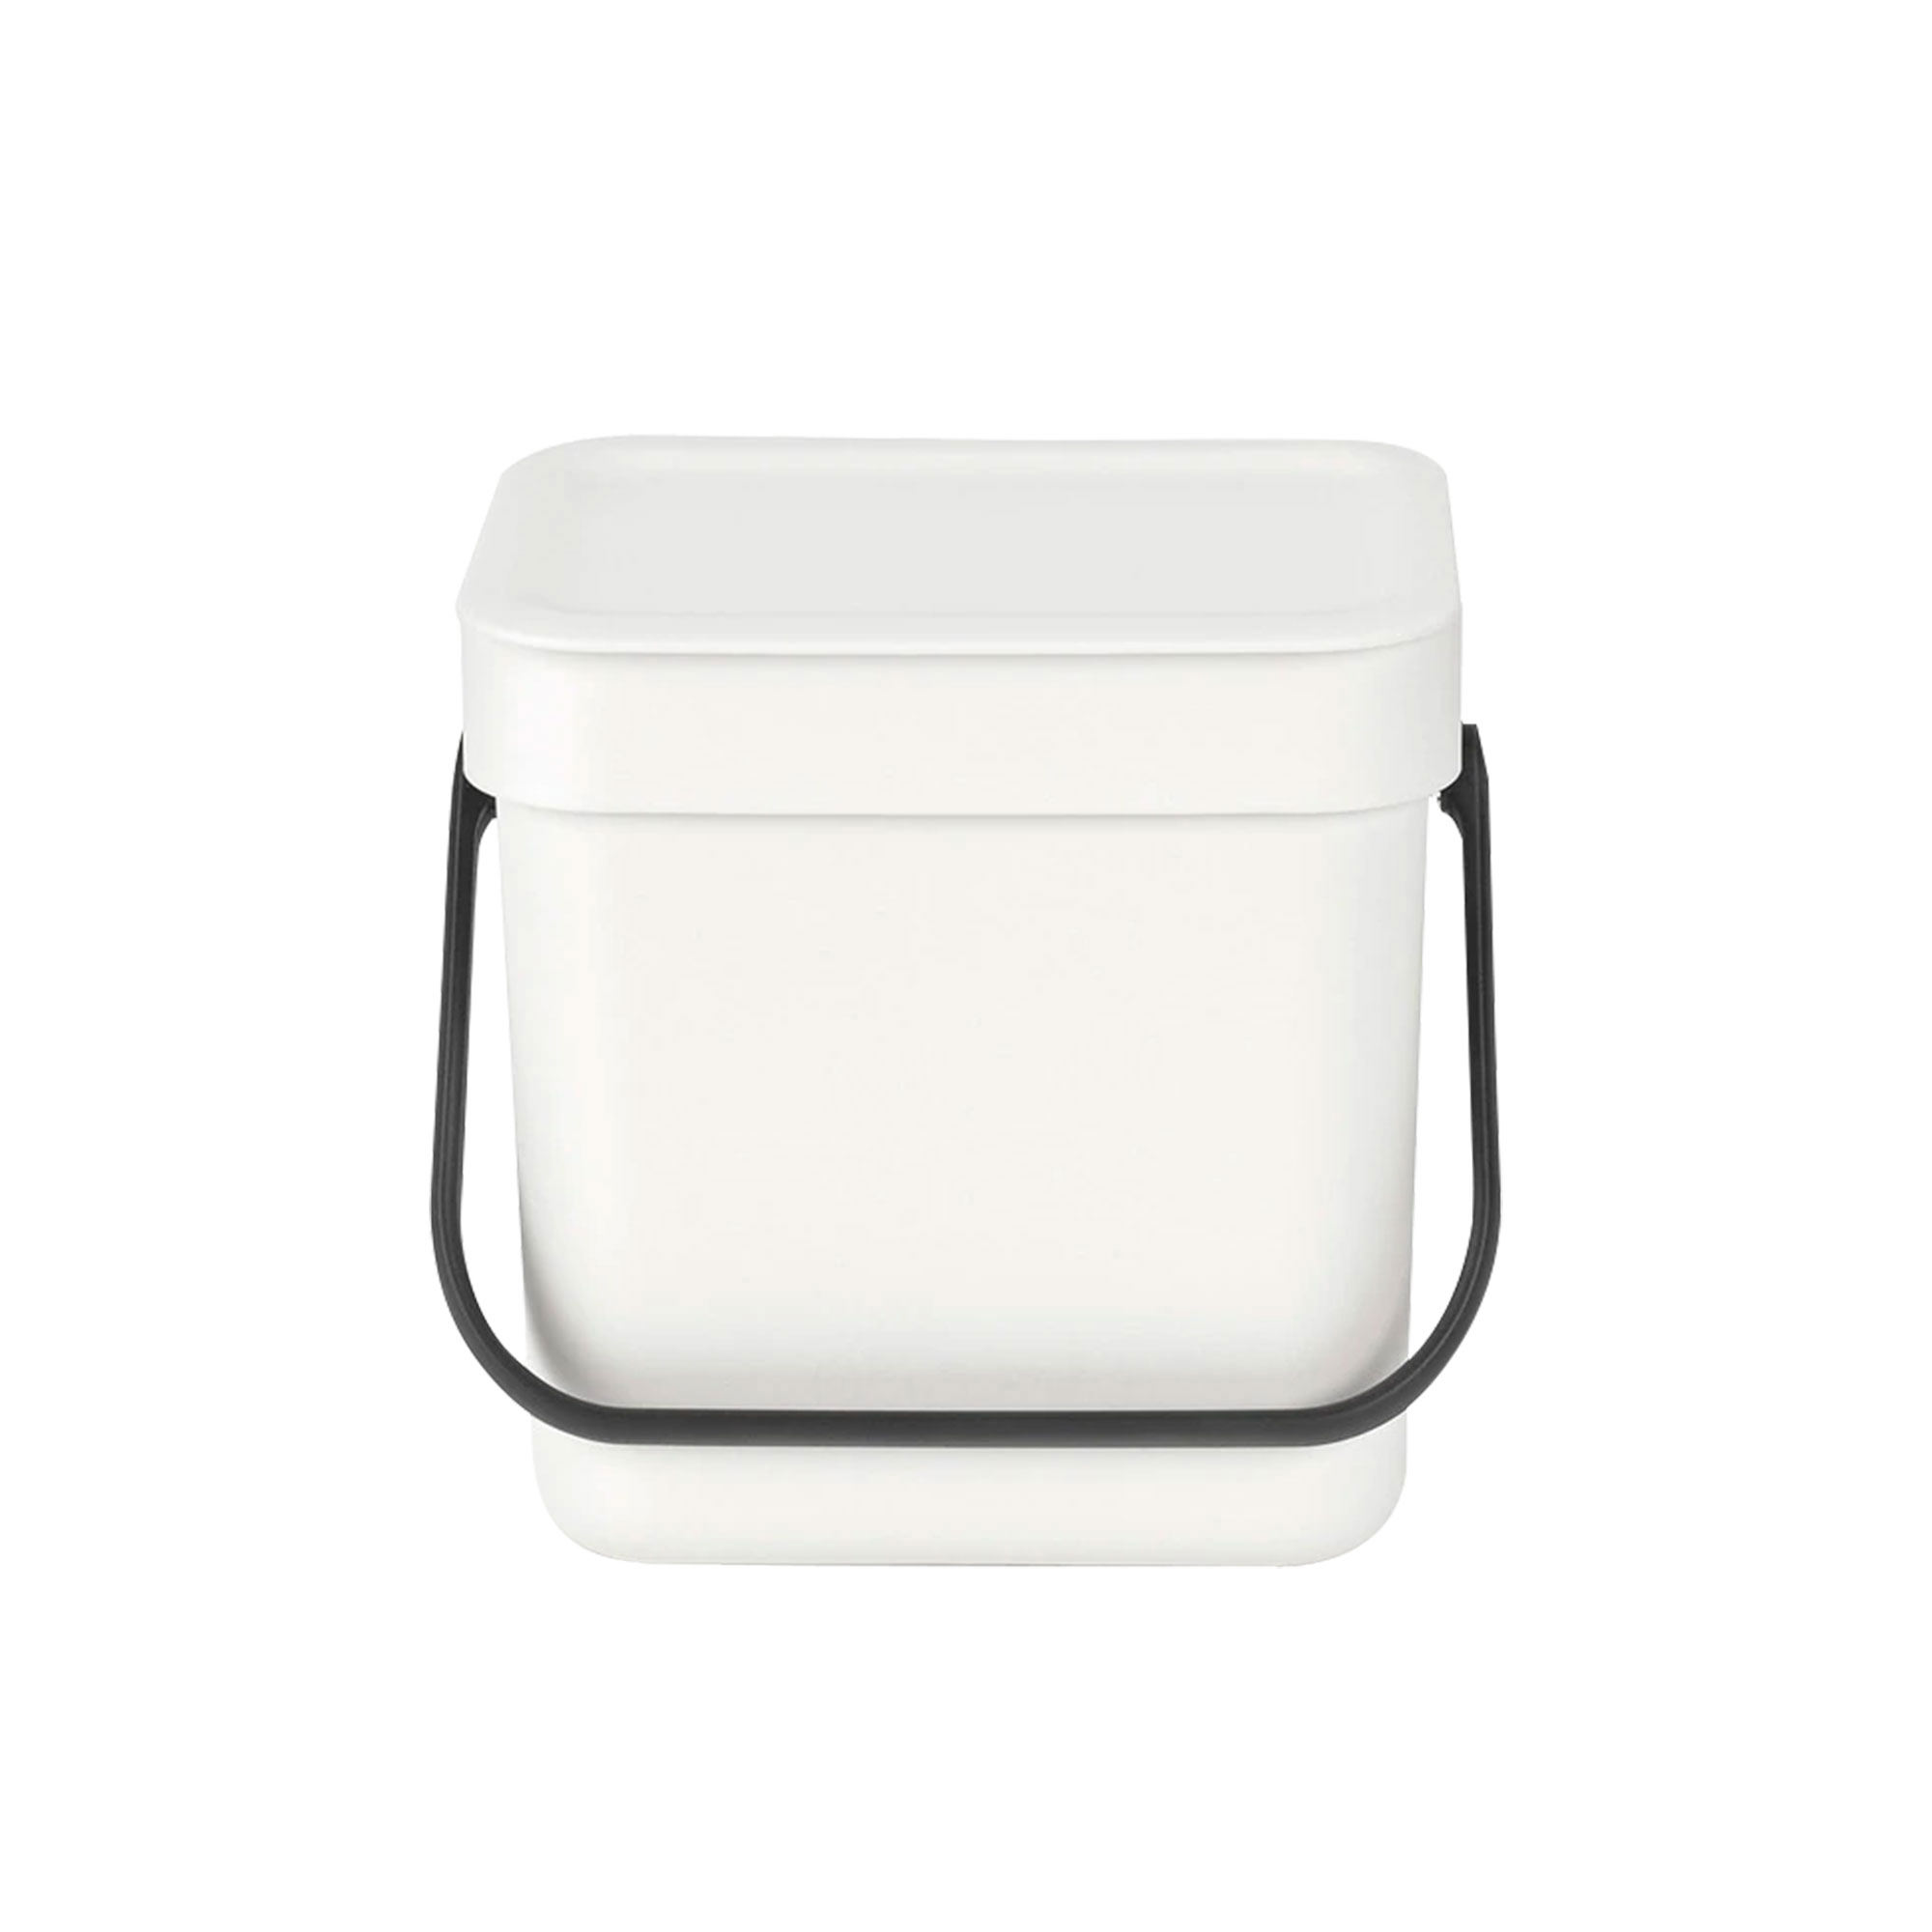 Brabantia Sort & Go Compost Waste Bin 3L White